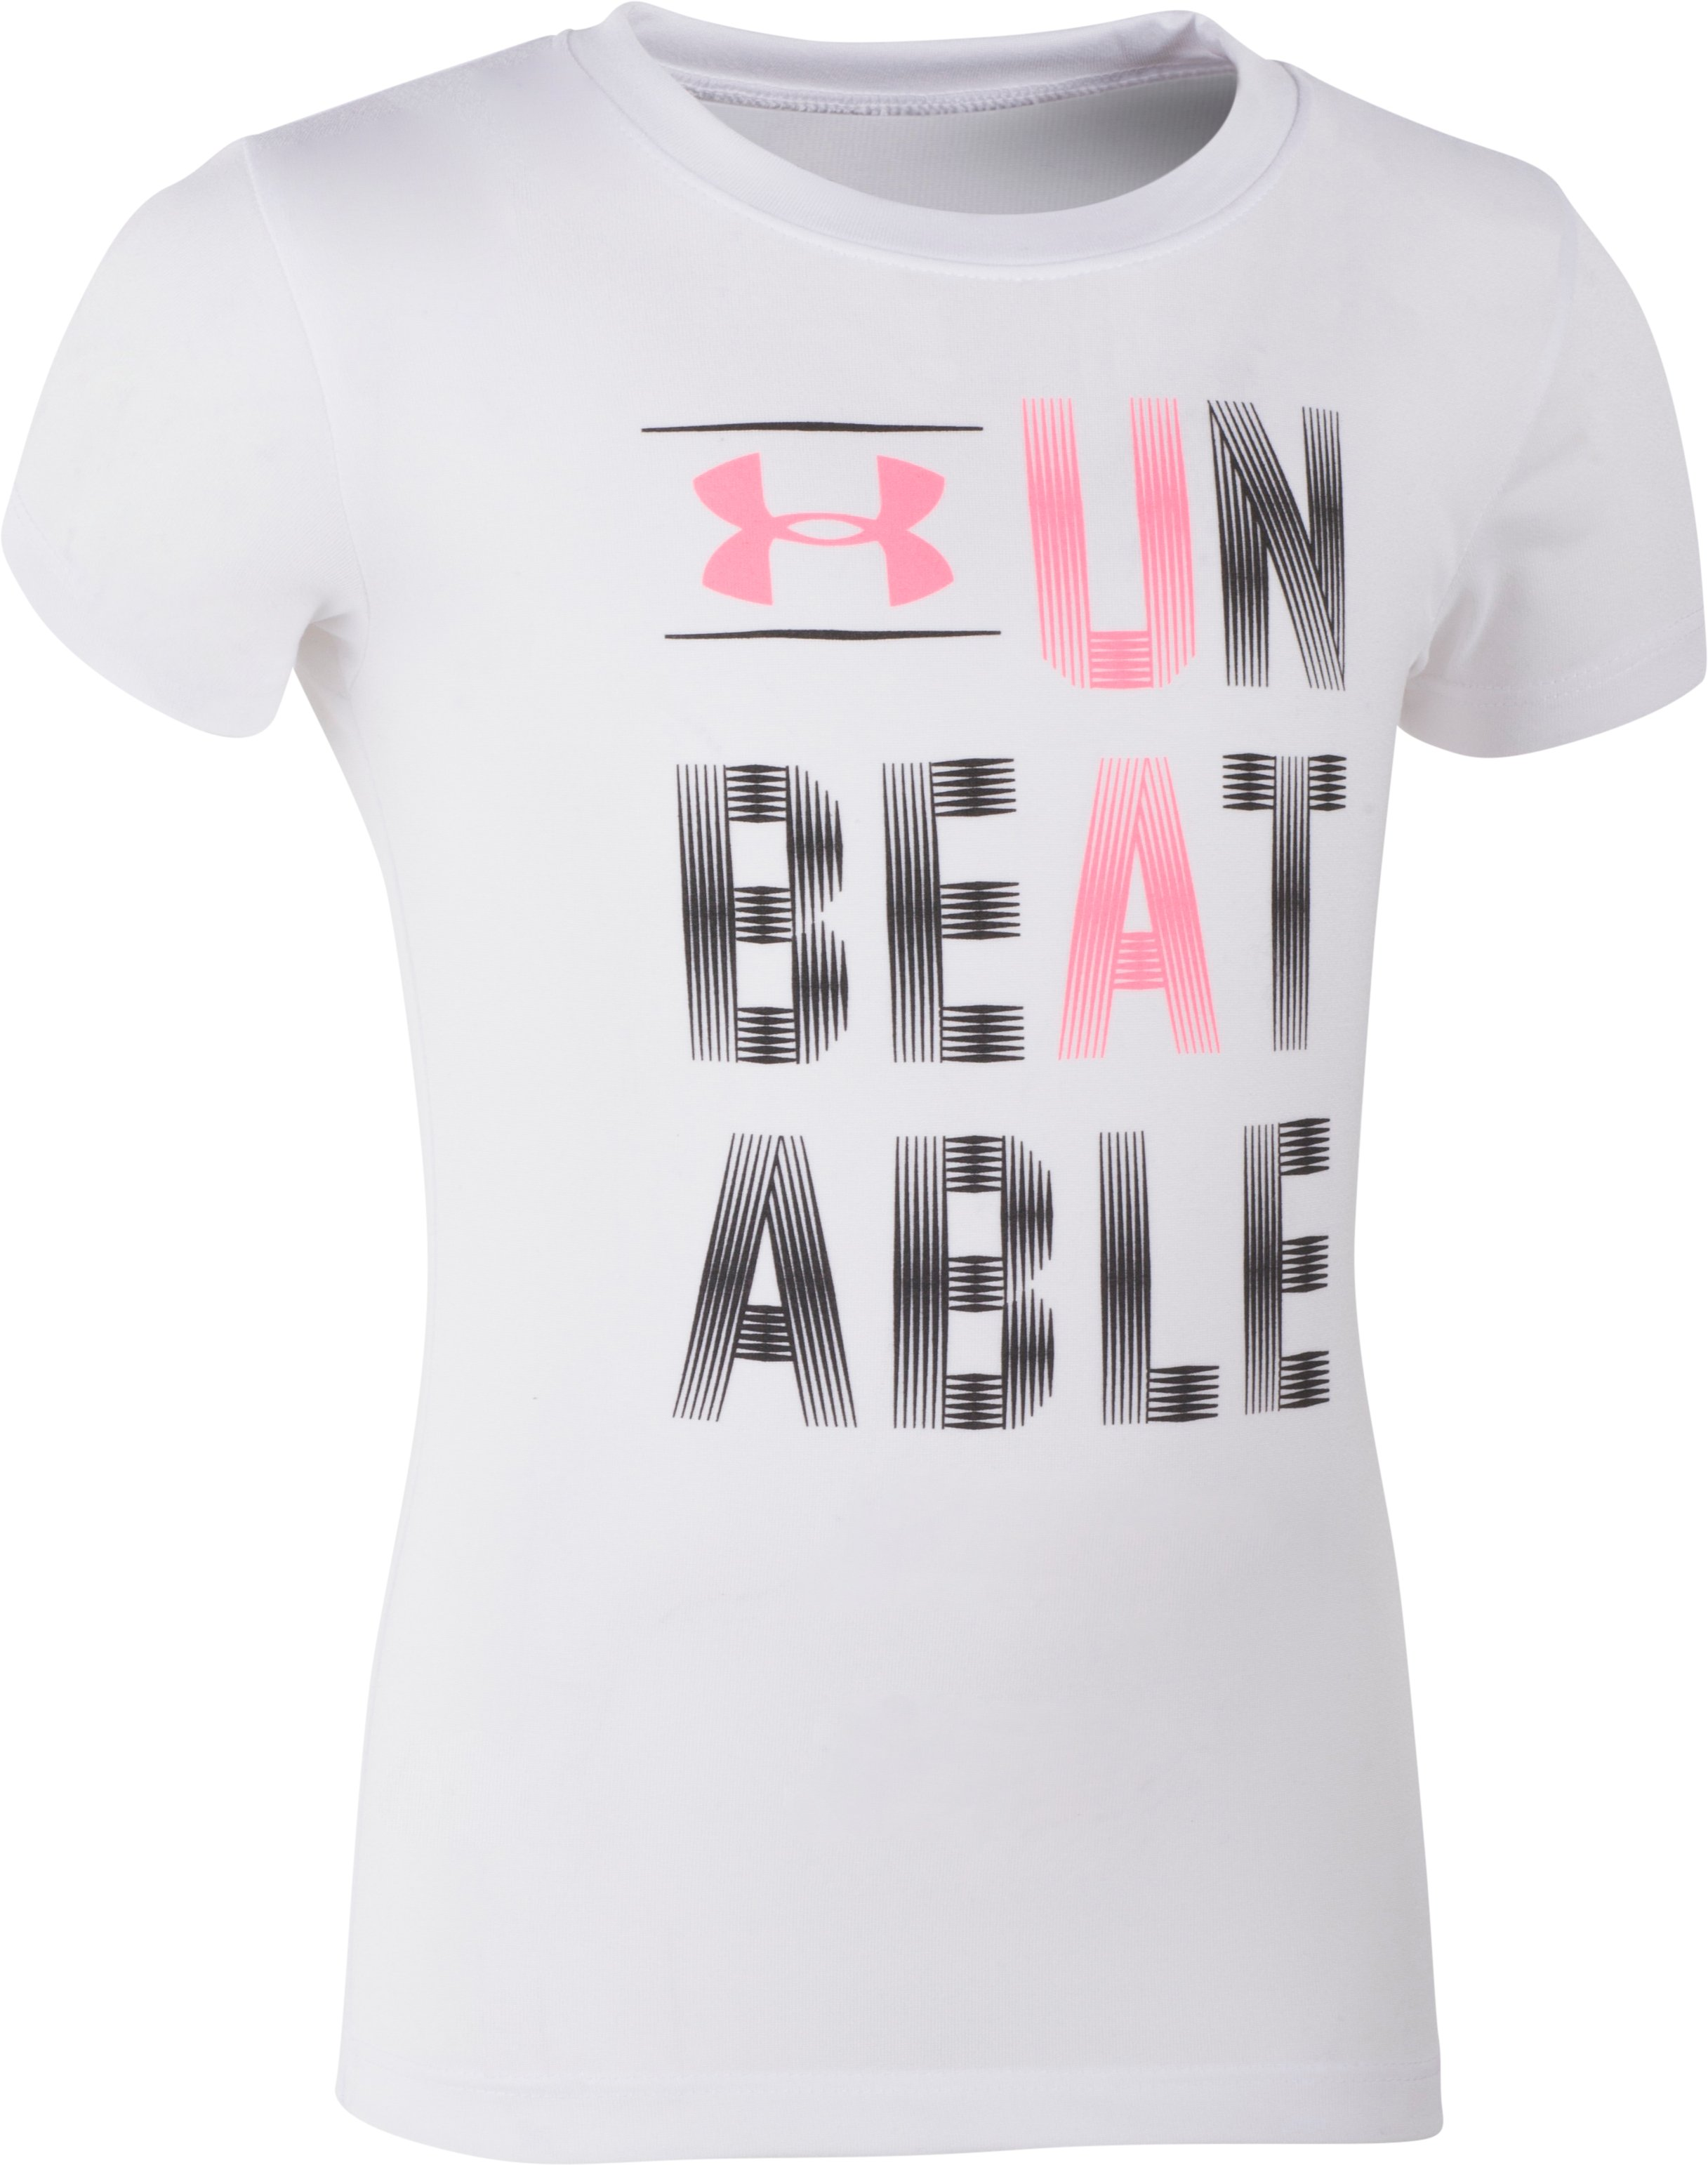 Girls' Pre-School UA Unbeatable T-Shirt, White, Laydown